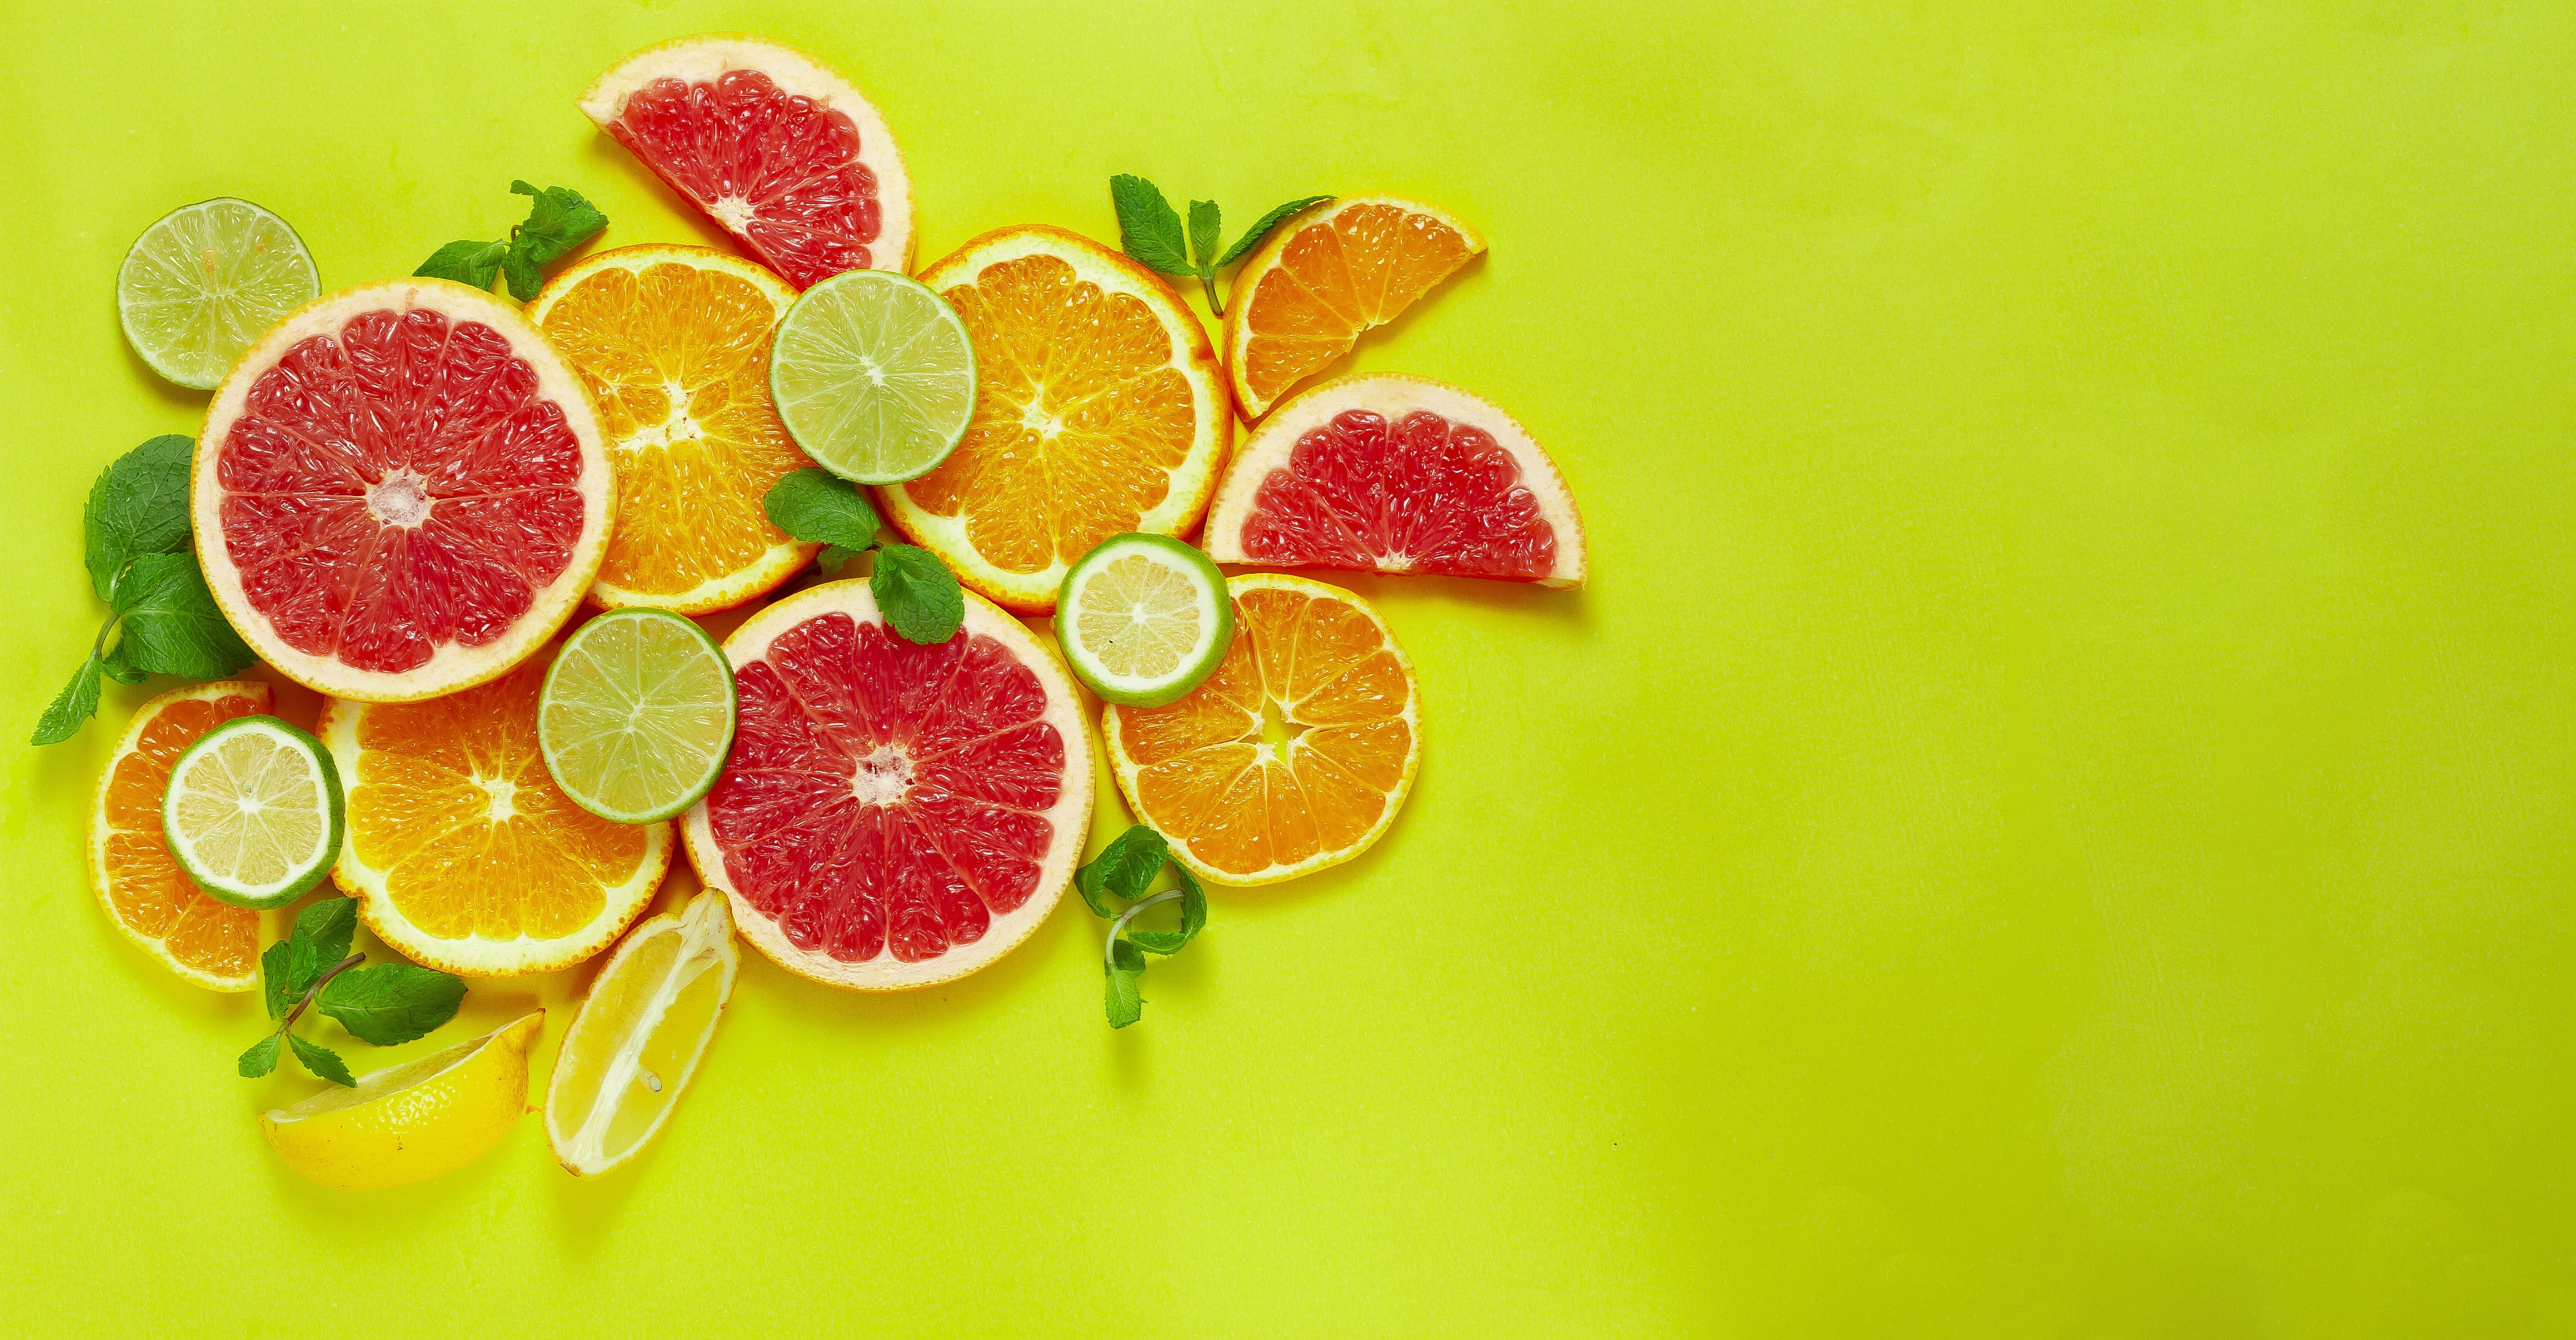 Assortment of citrus fruits on yellow background